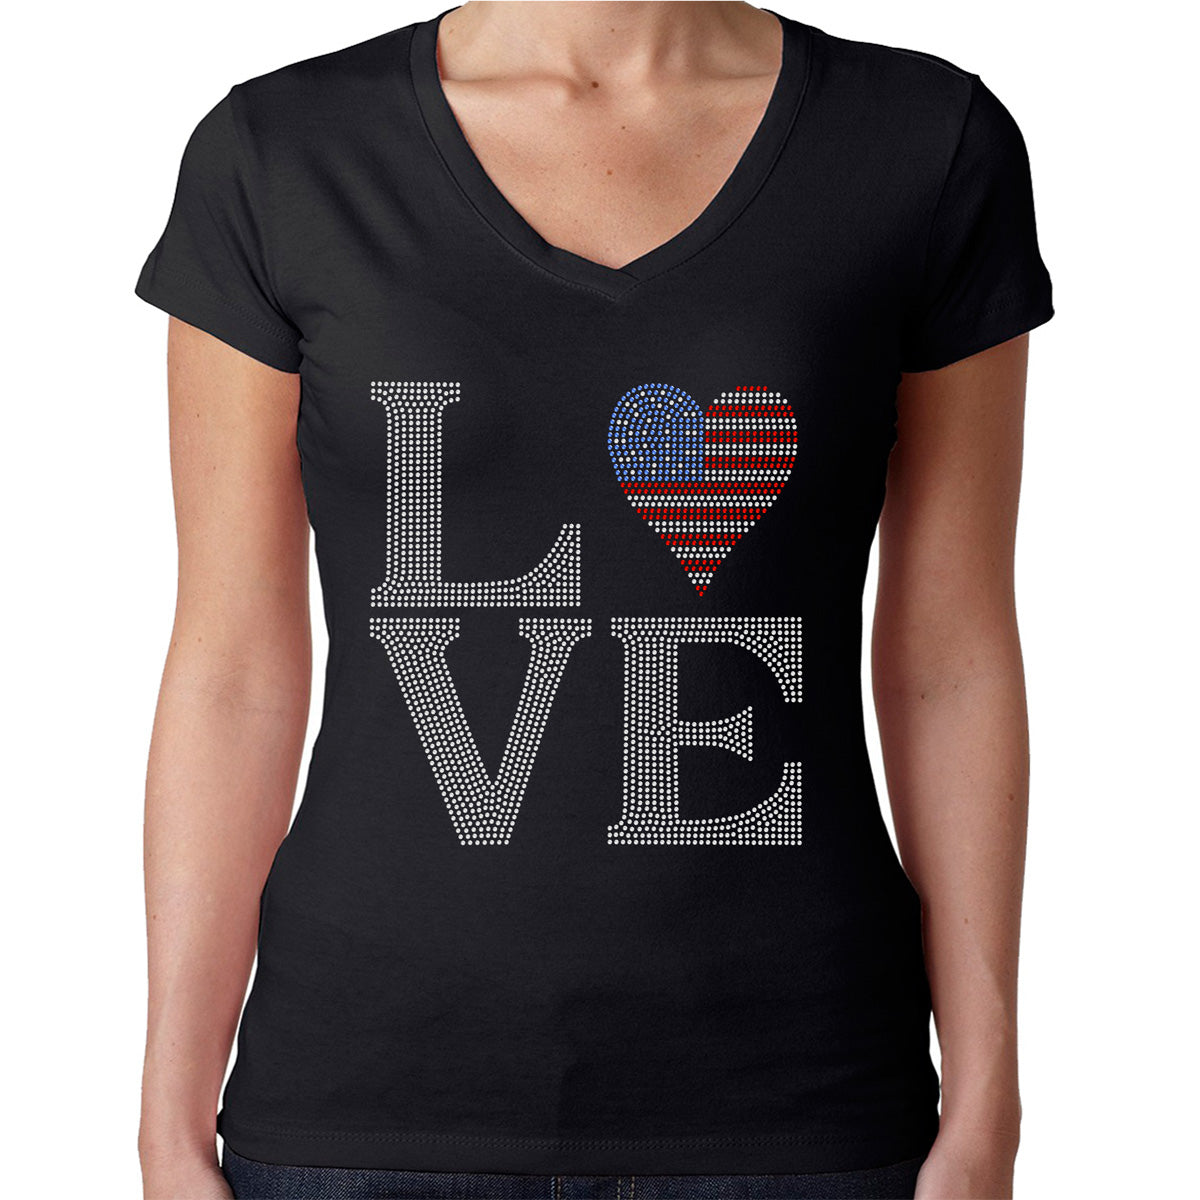 Womens T-Shirt Rhinestone Bling Black Fitted Tee LOVE USA Flag 4th of July